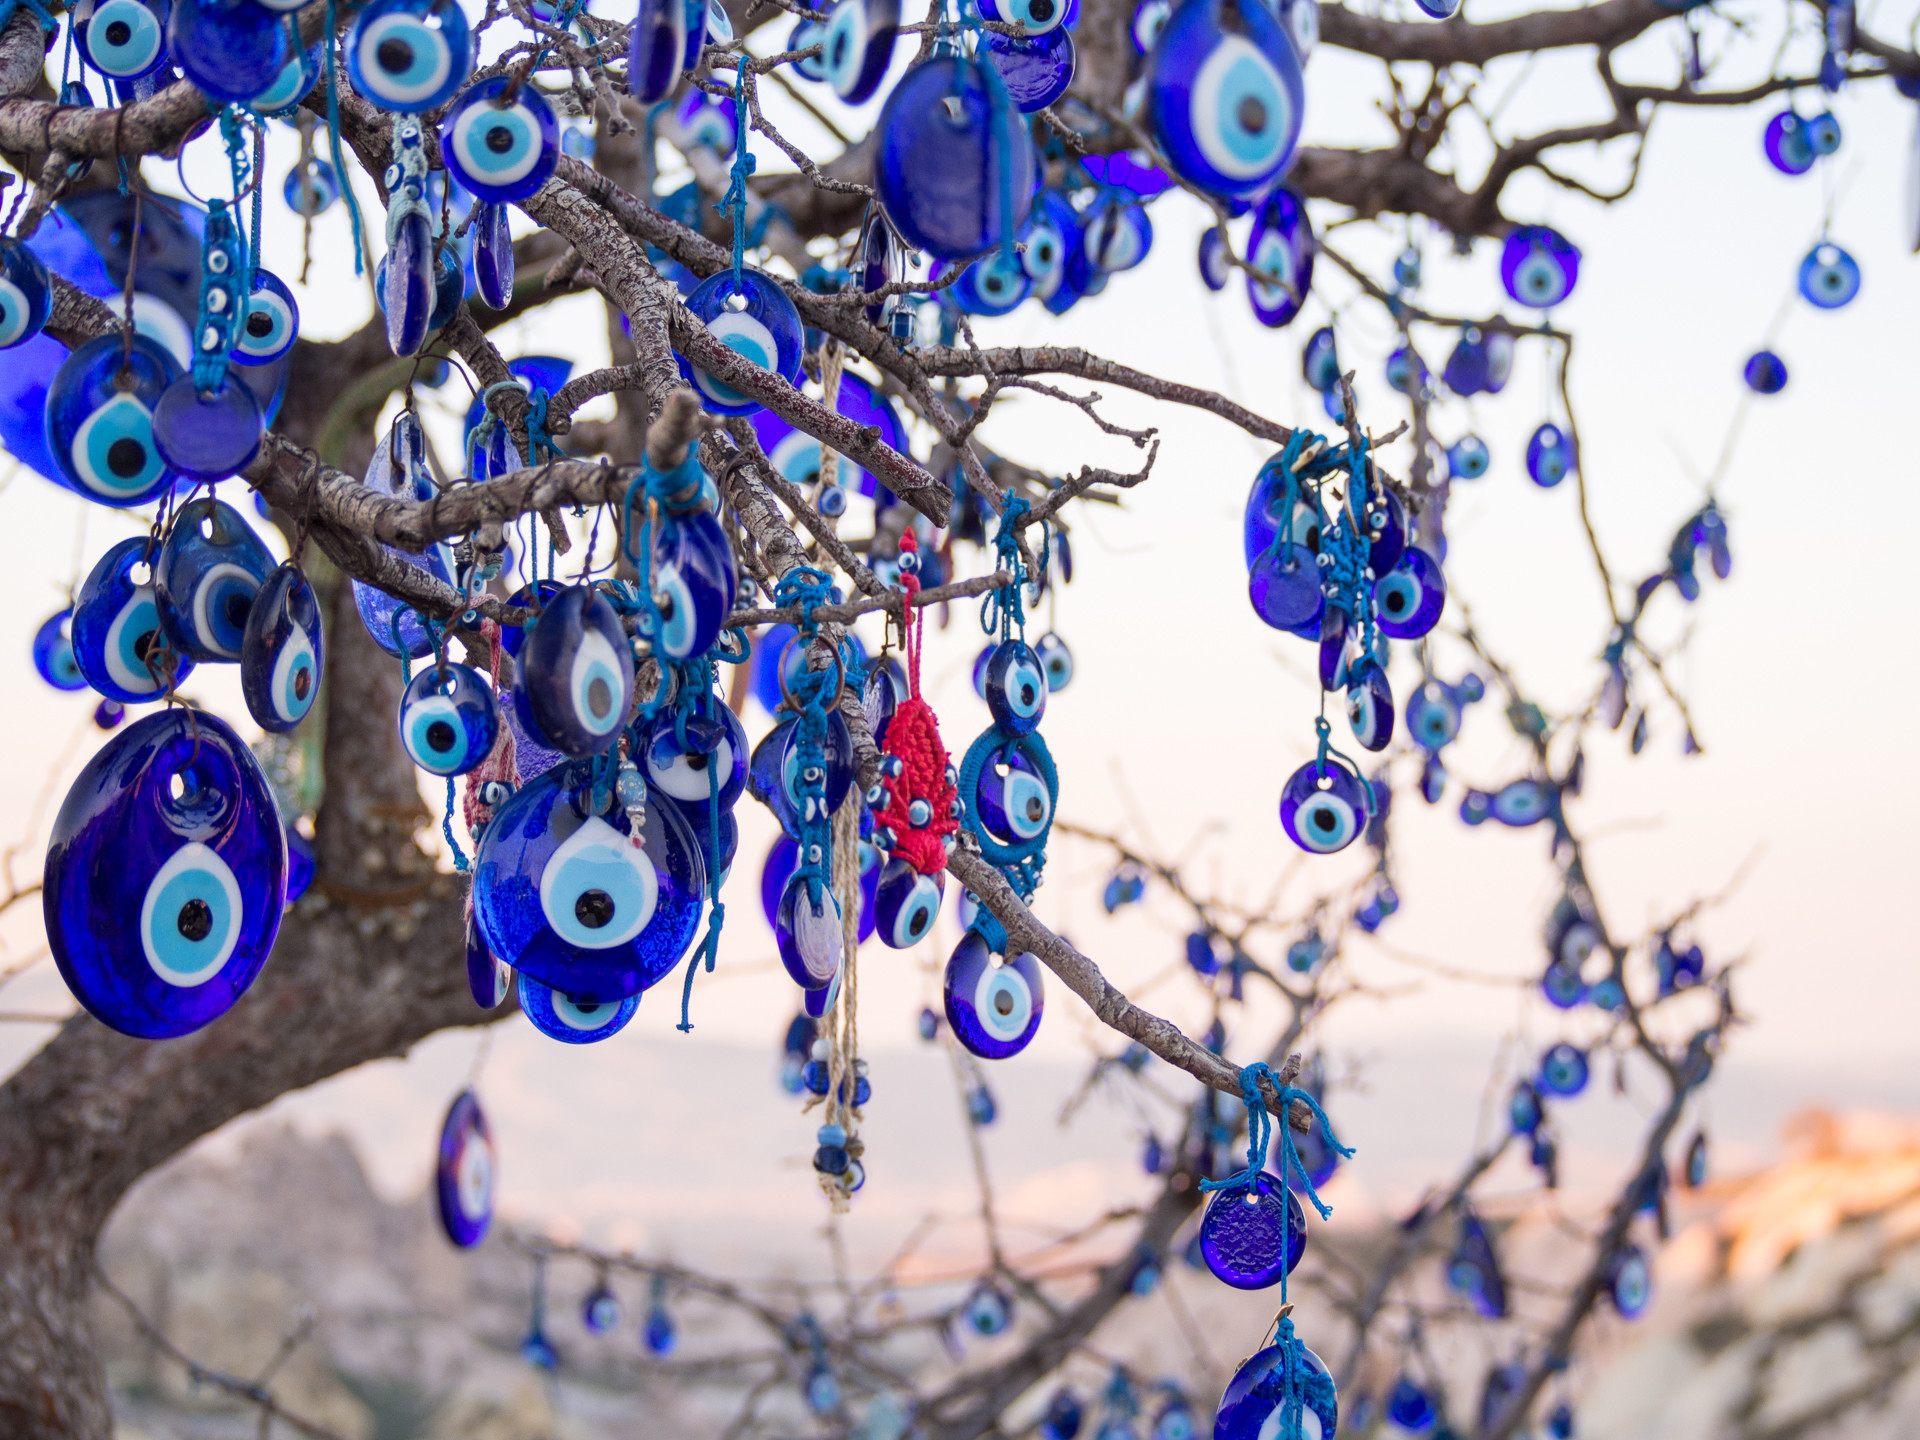 1920x1440 Tree with nazar (eye-shaped amulet believed to protect against the evil eye)